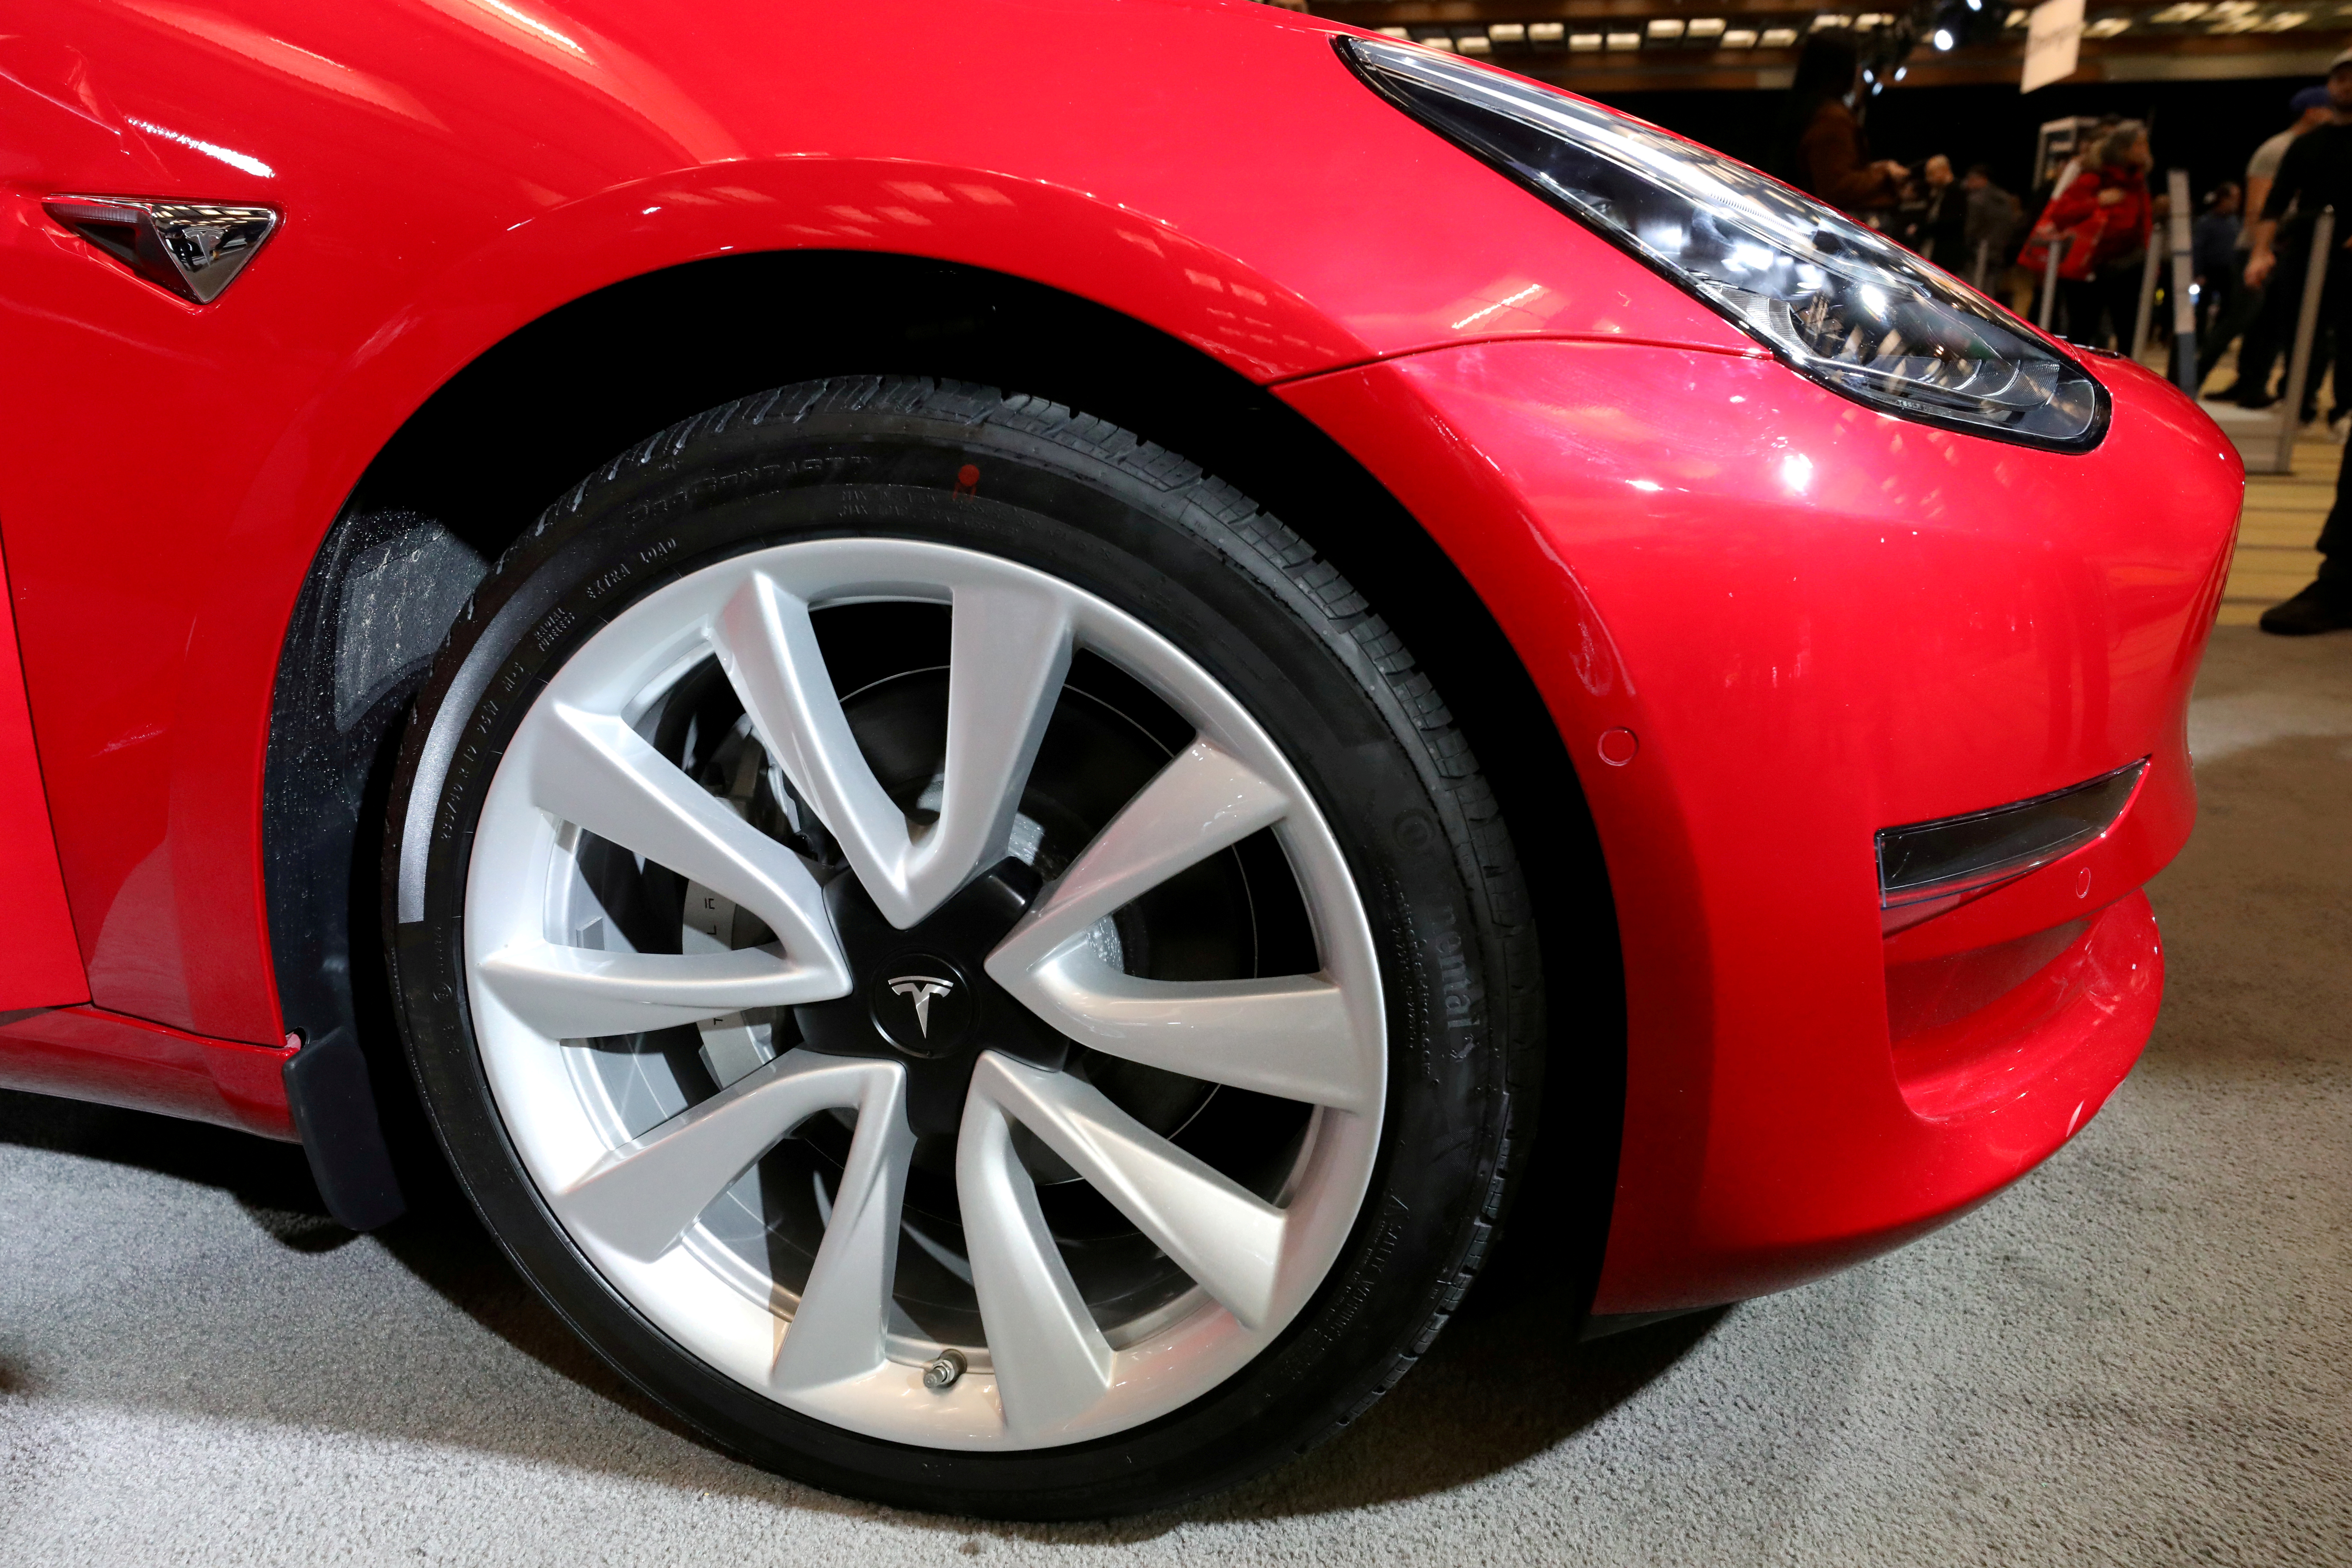 Tesla takes its first step into India